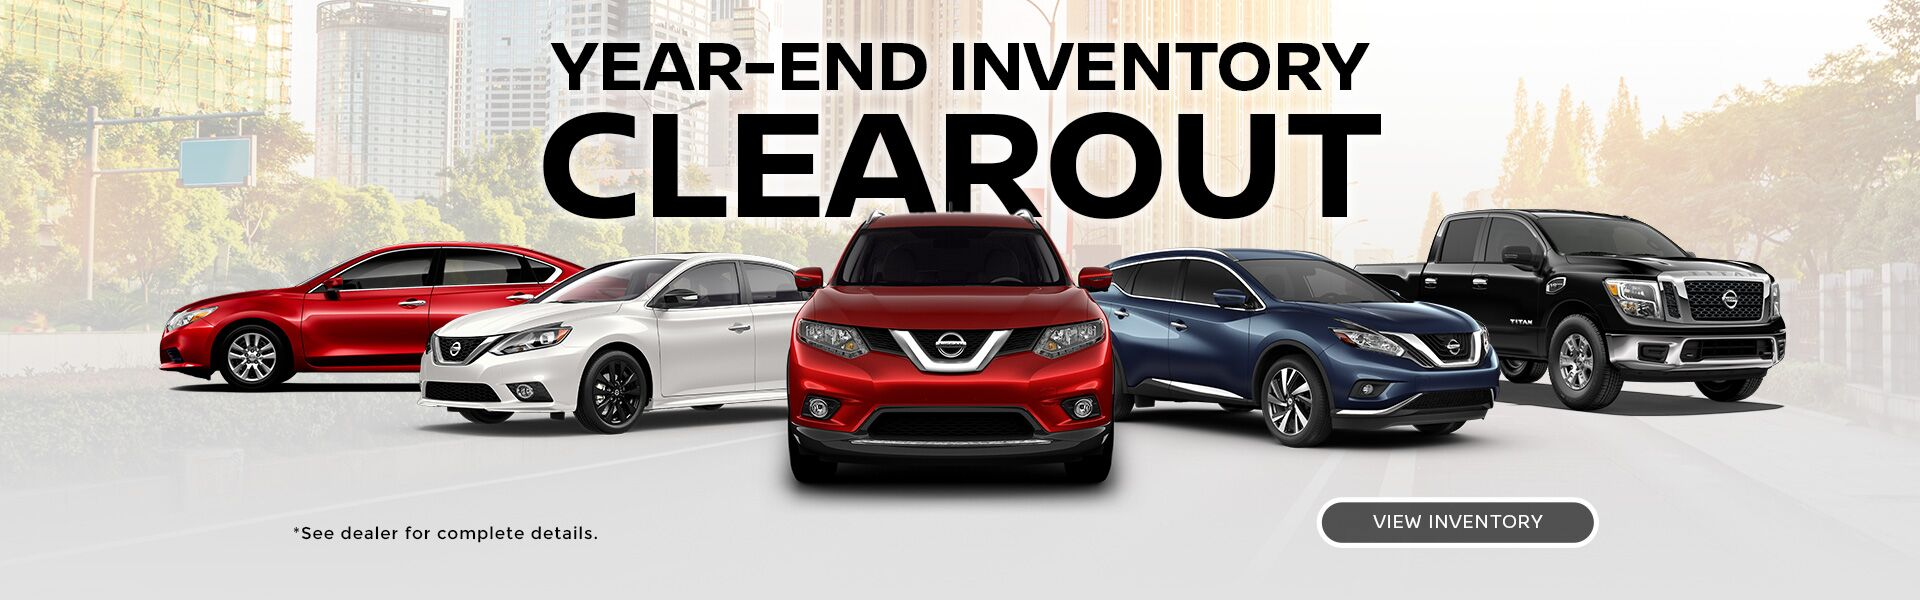 Year-end inventory clearout at Penticton Nissan